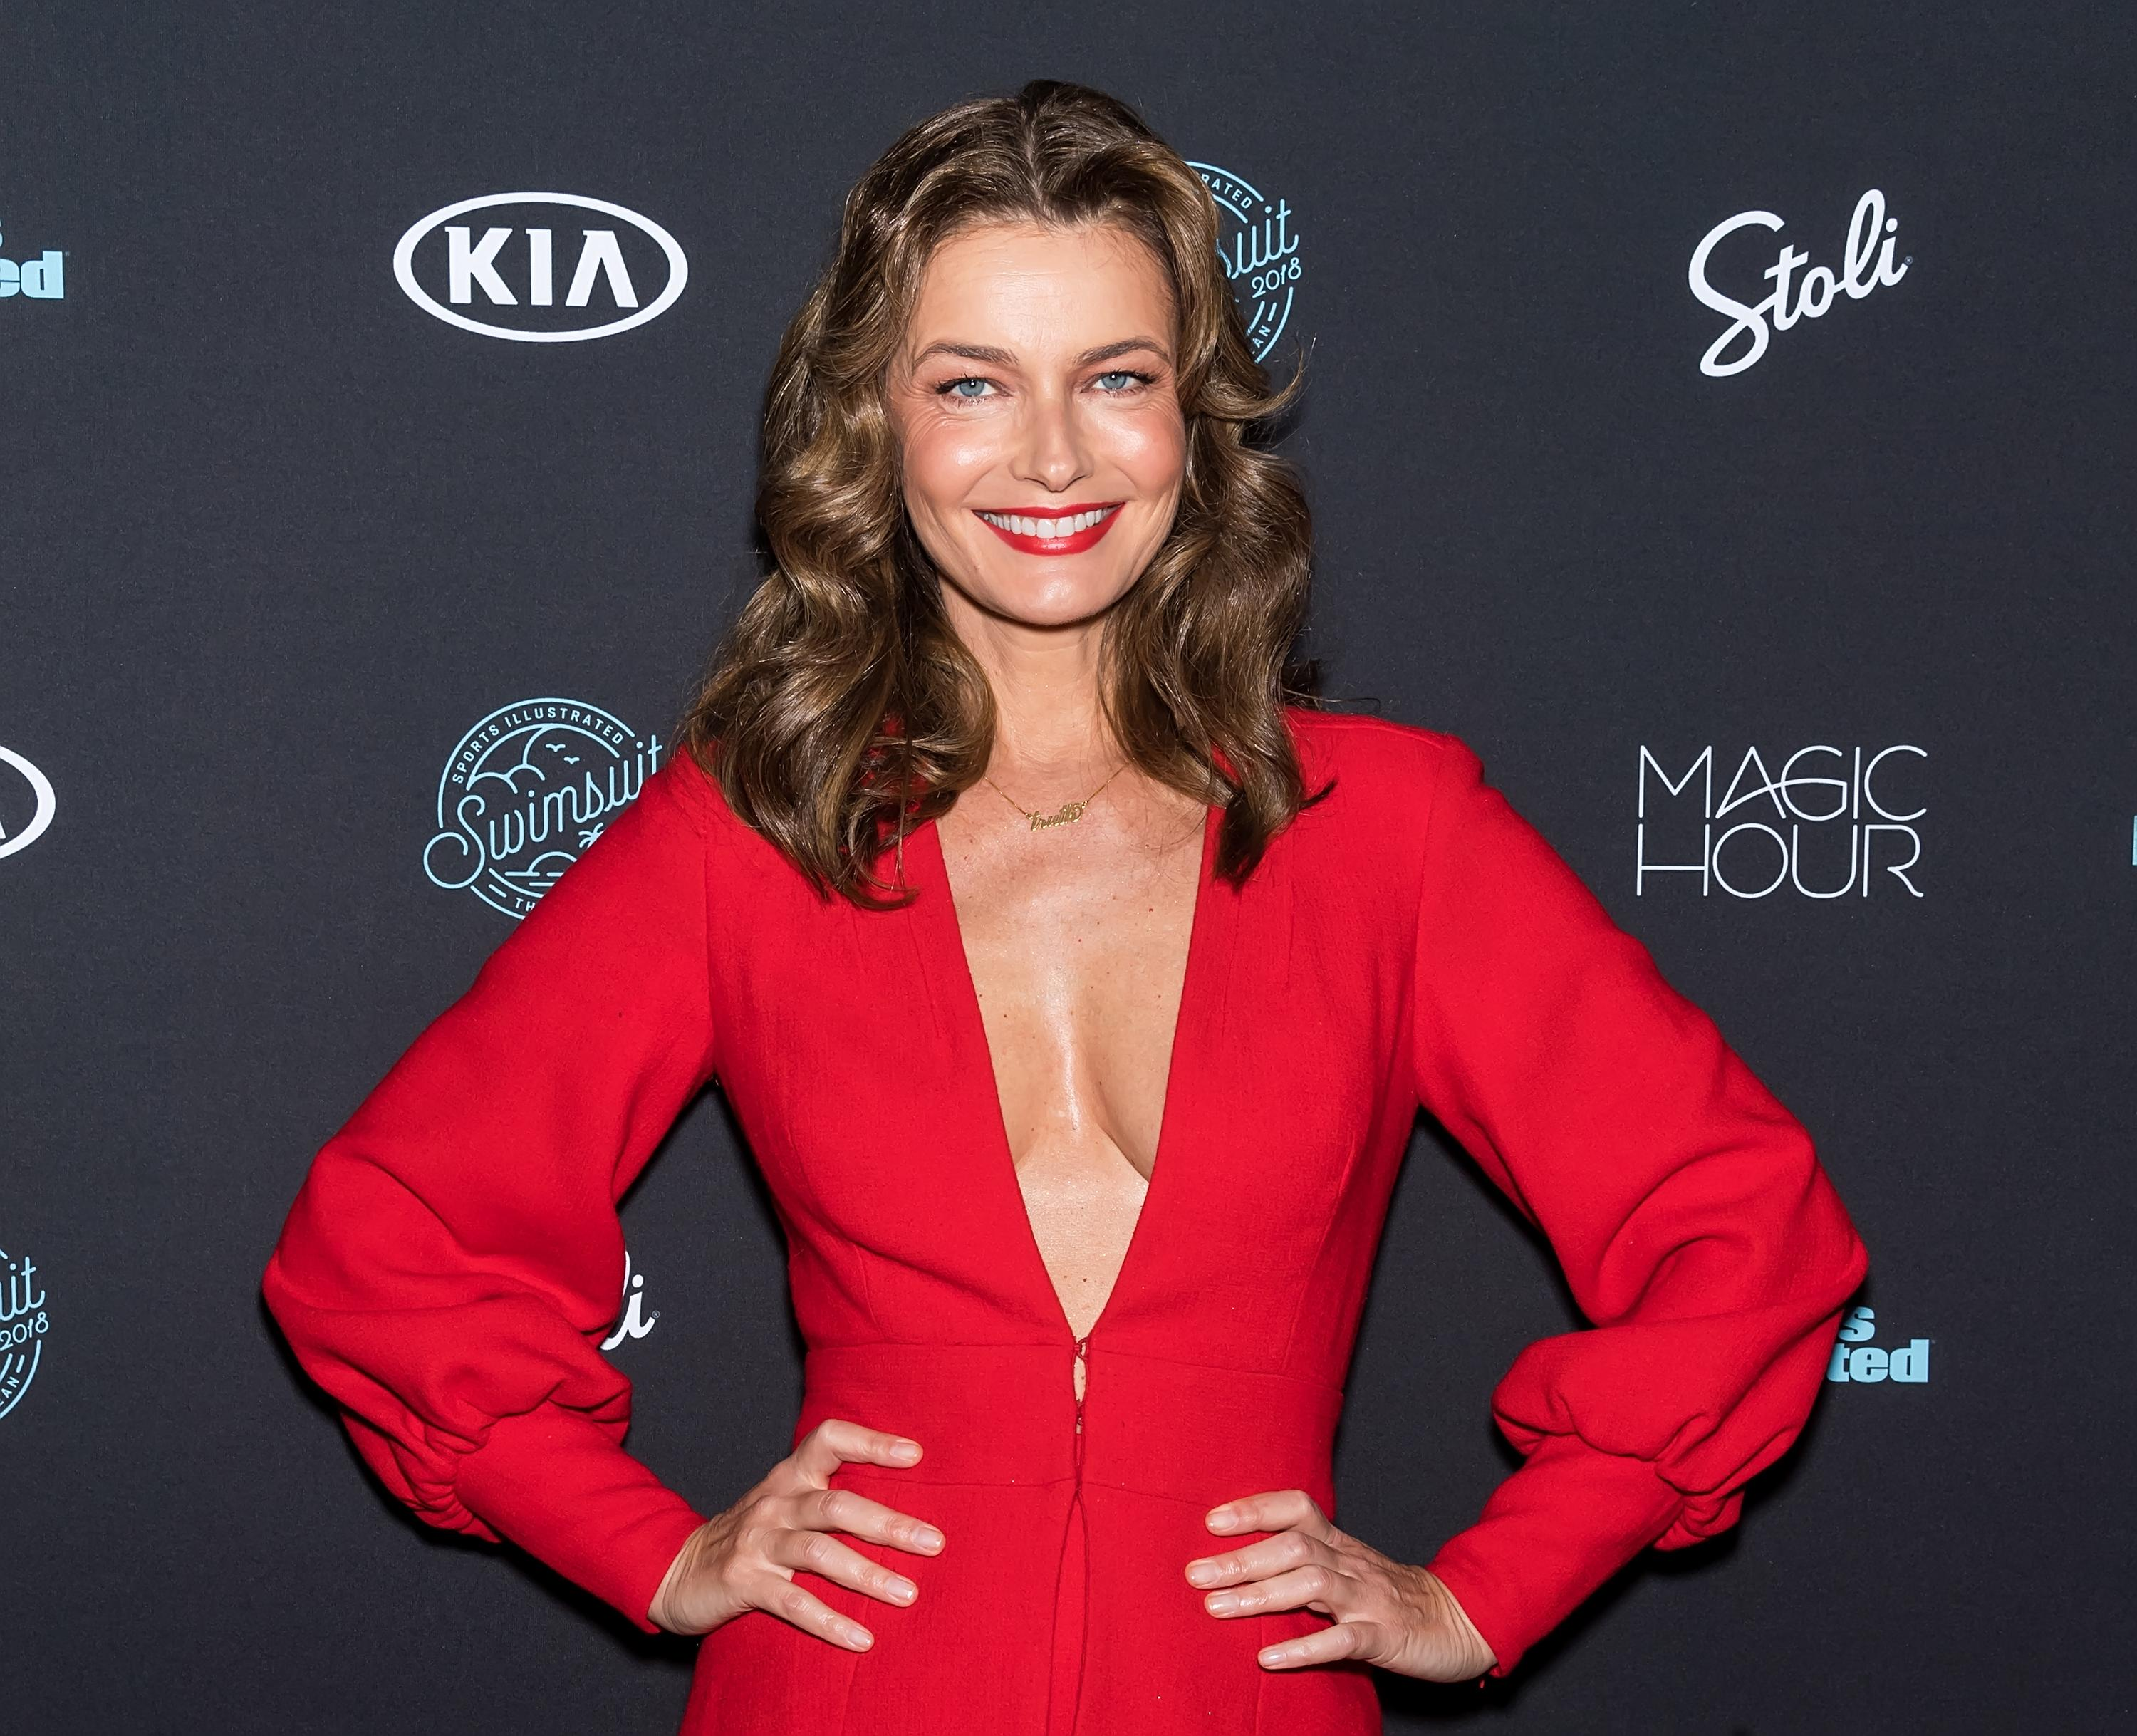 Paulina Porizkova, 54, embraces aging in makeup-free selfie: 'This is what I really look like'